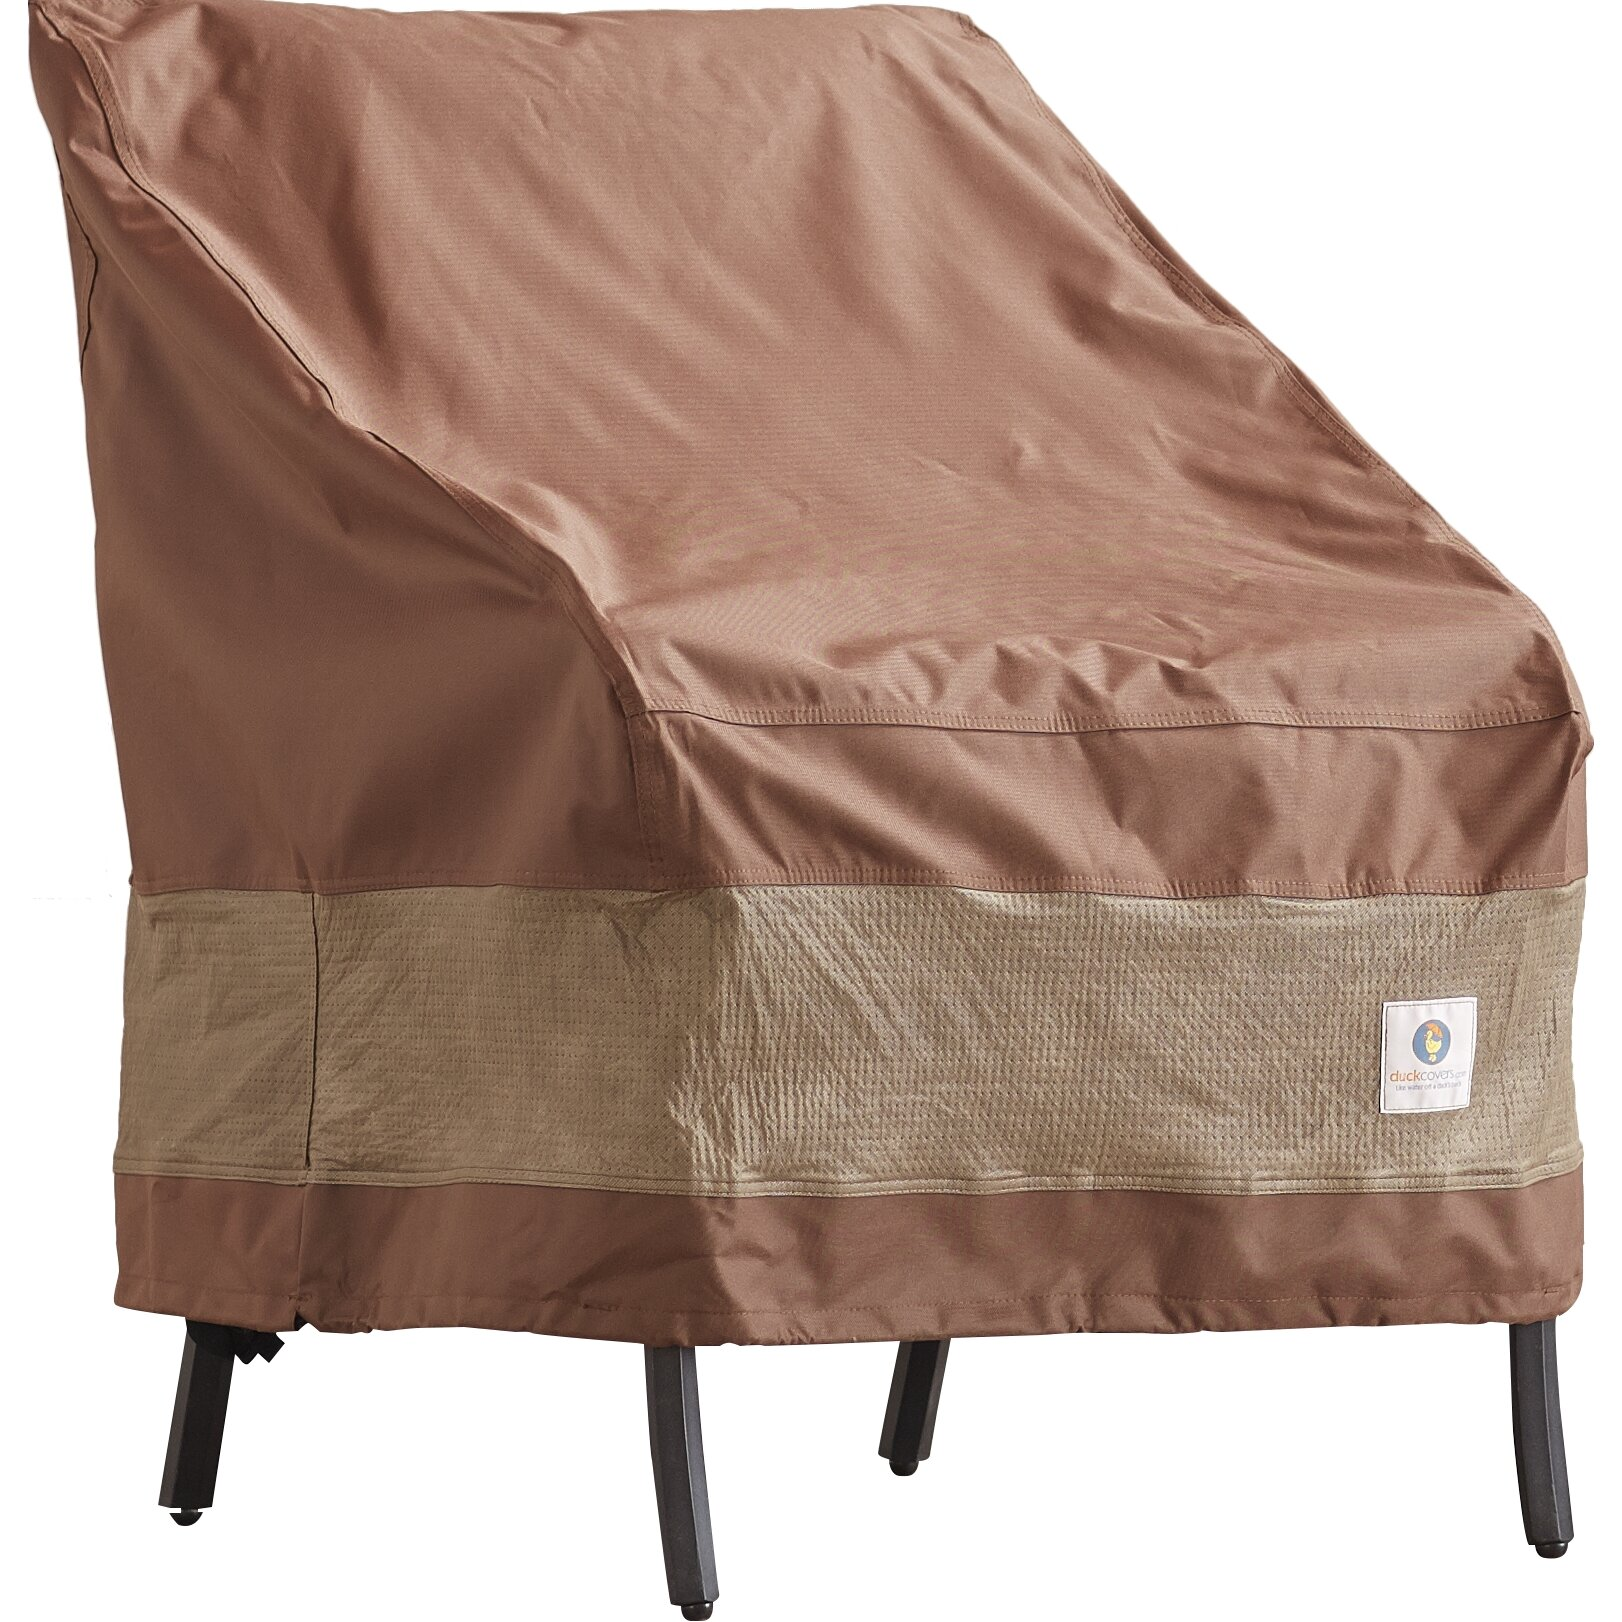 Symple Stuff Ultimate Patio Chair Cover & Reviews